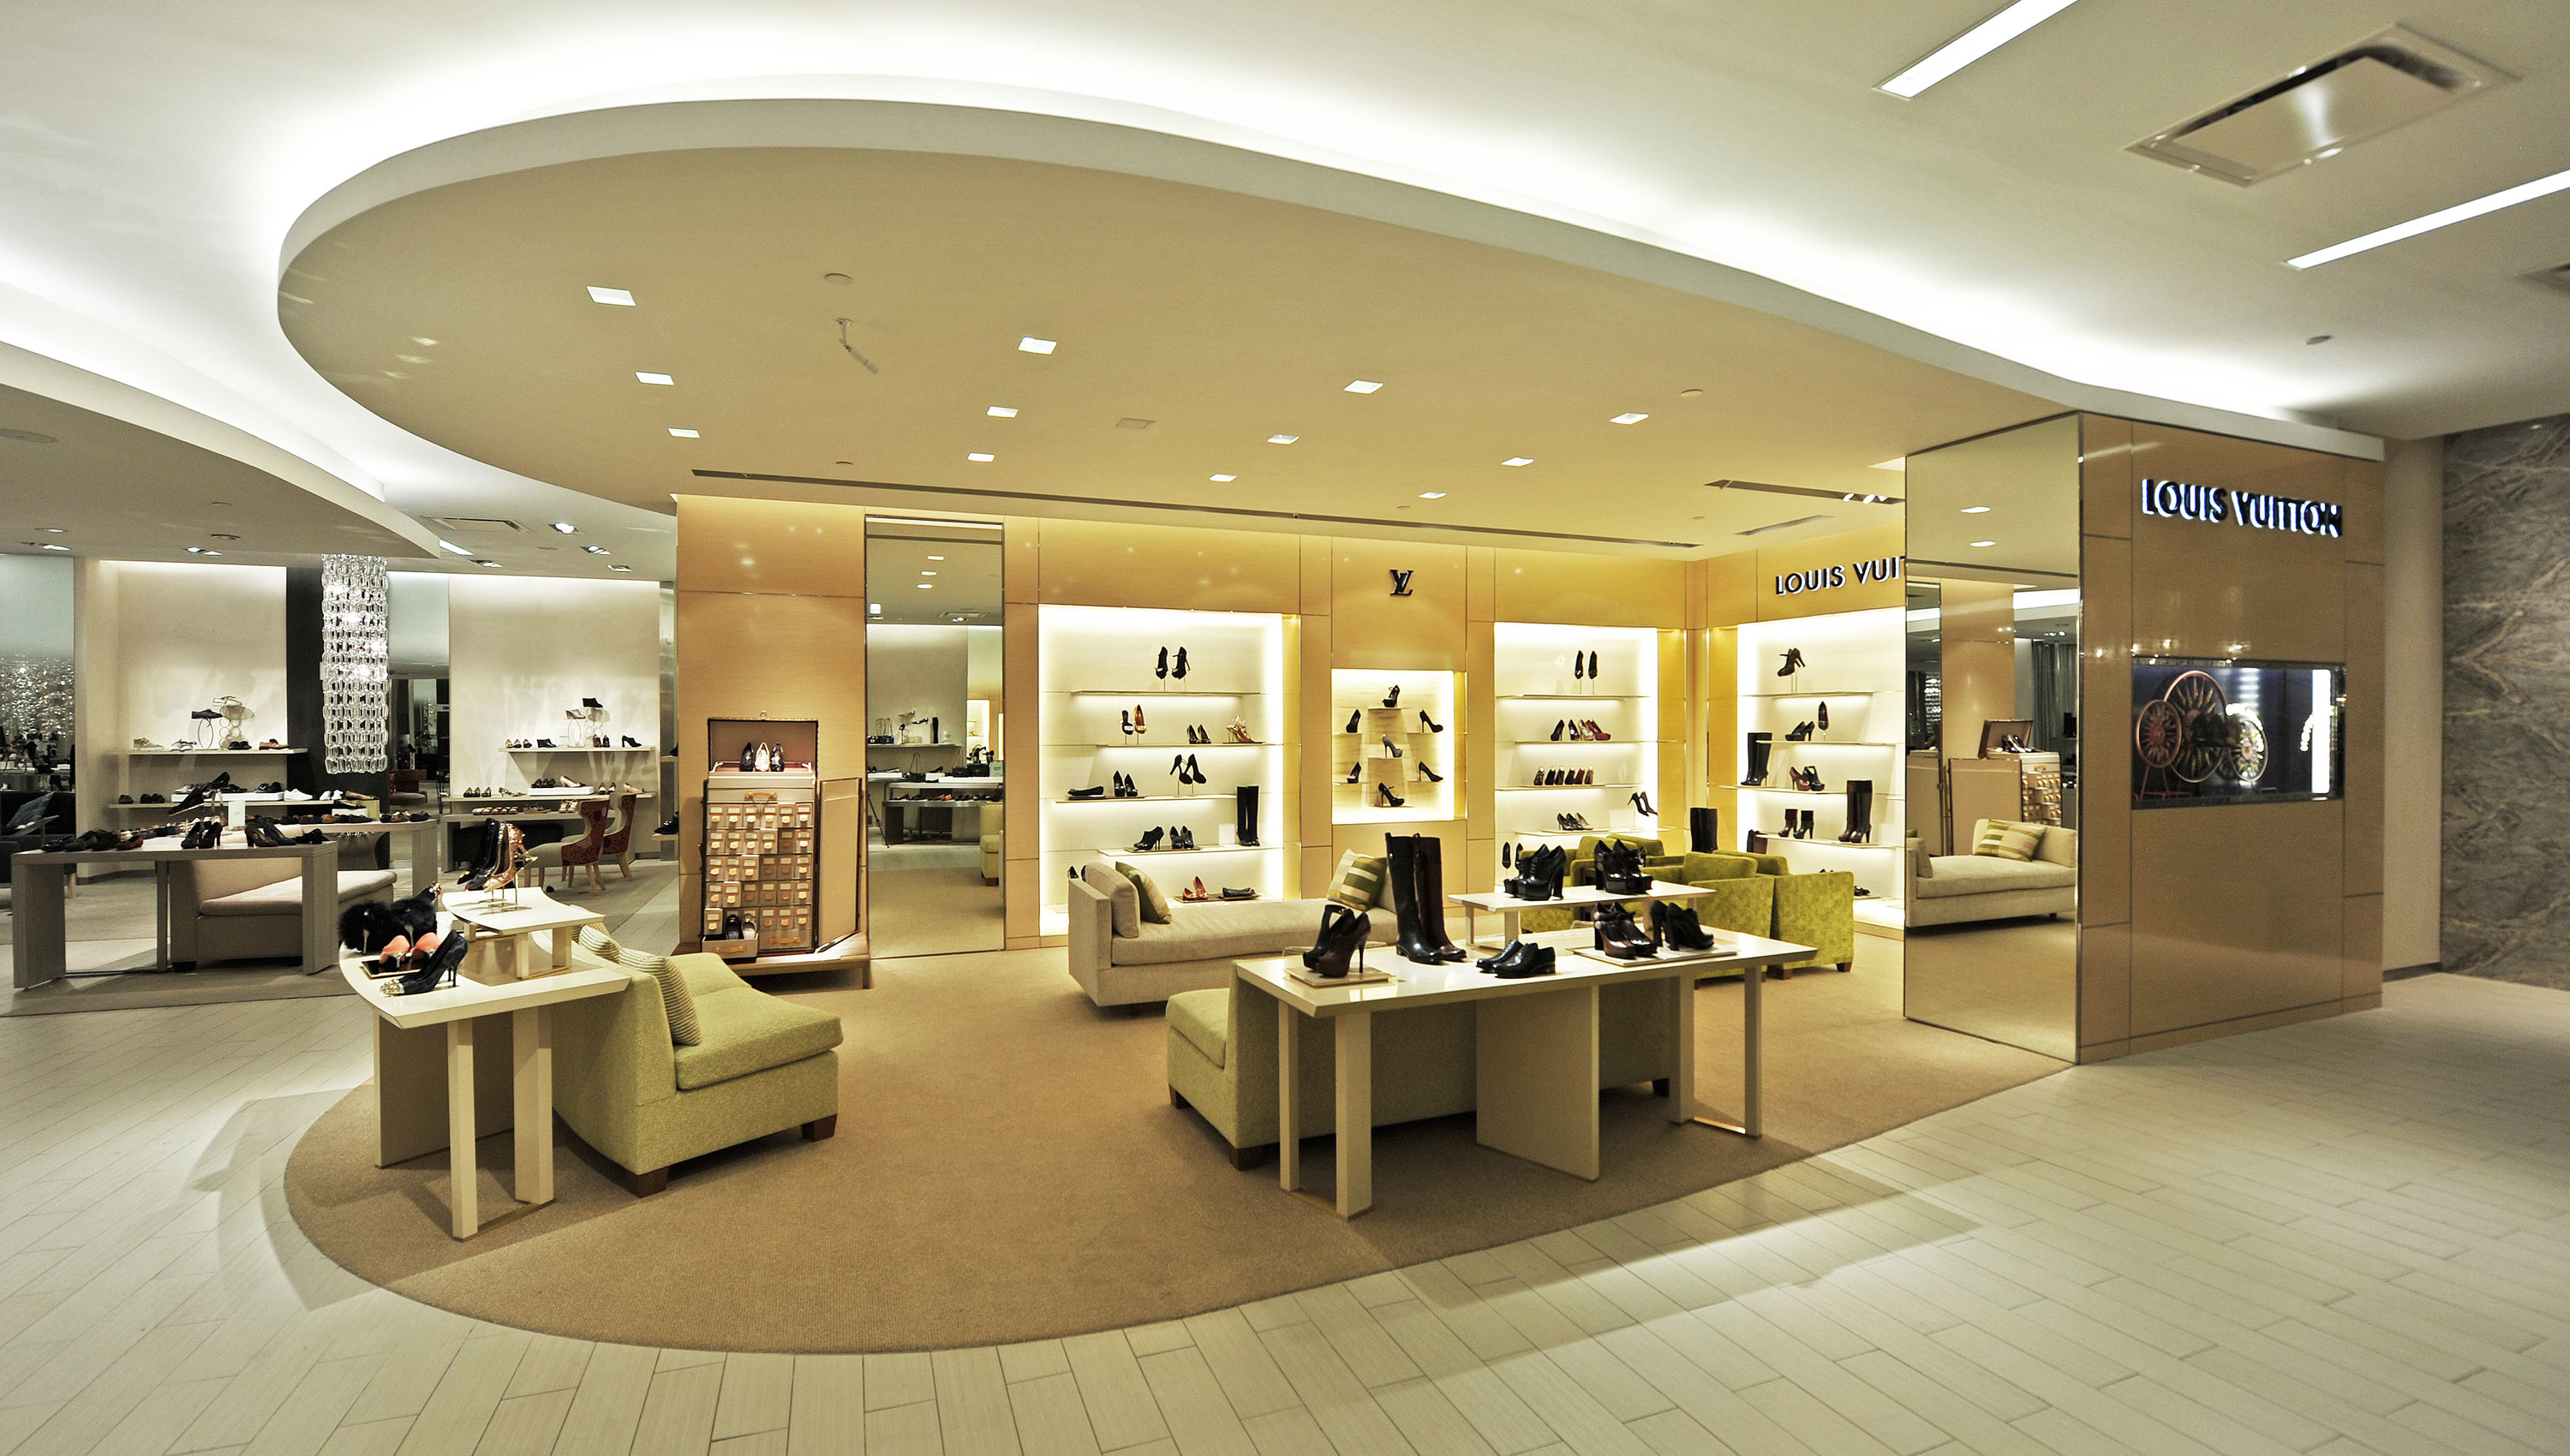 Louis vuitton new york saks 5th ave shoe salon new york for 5th avenue salon